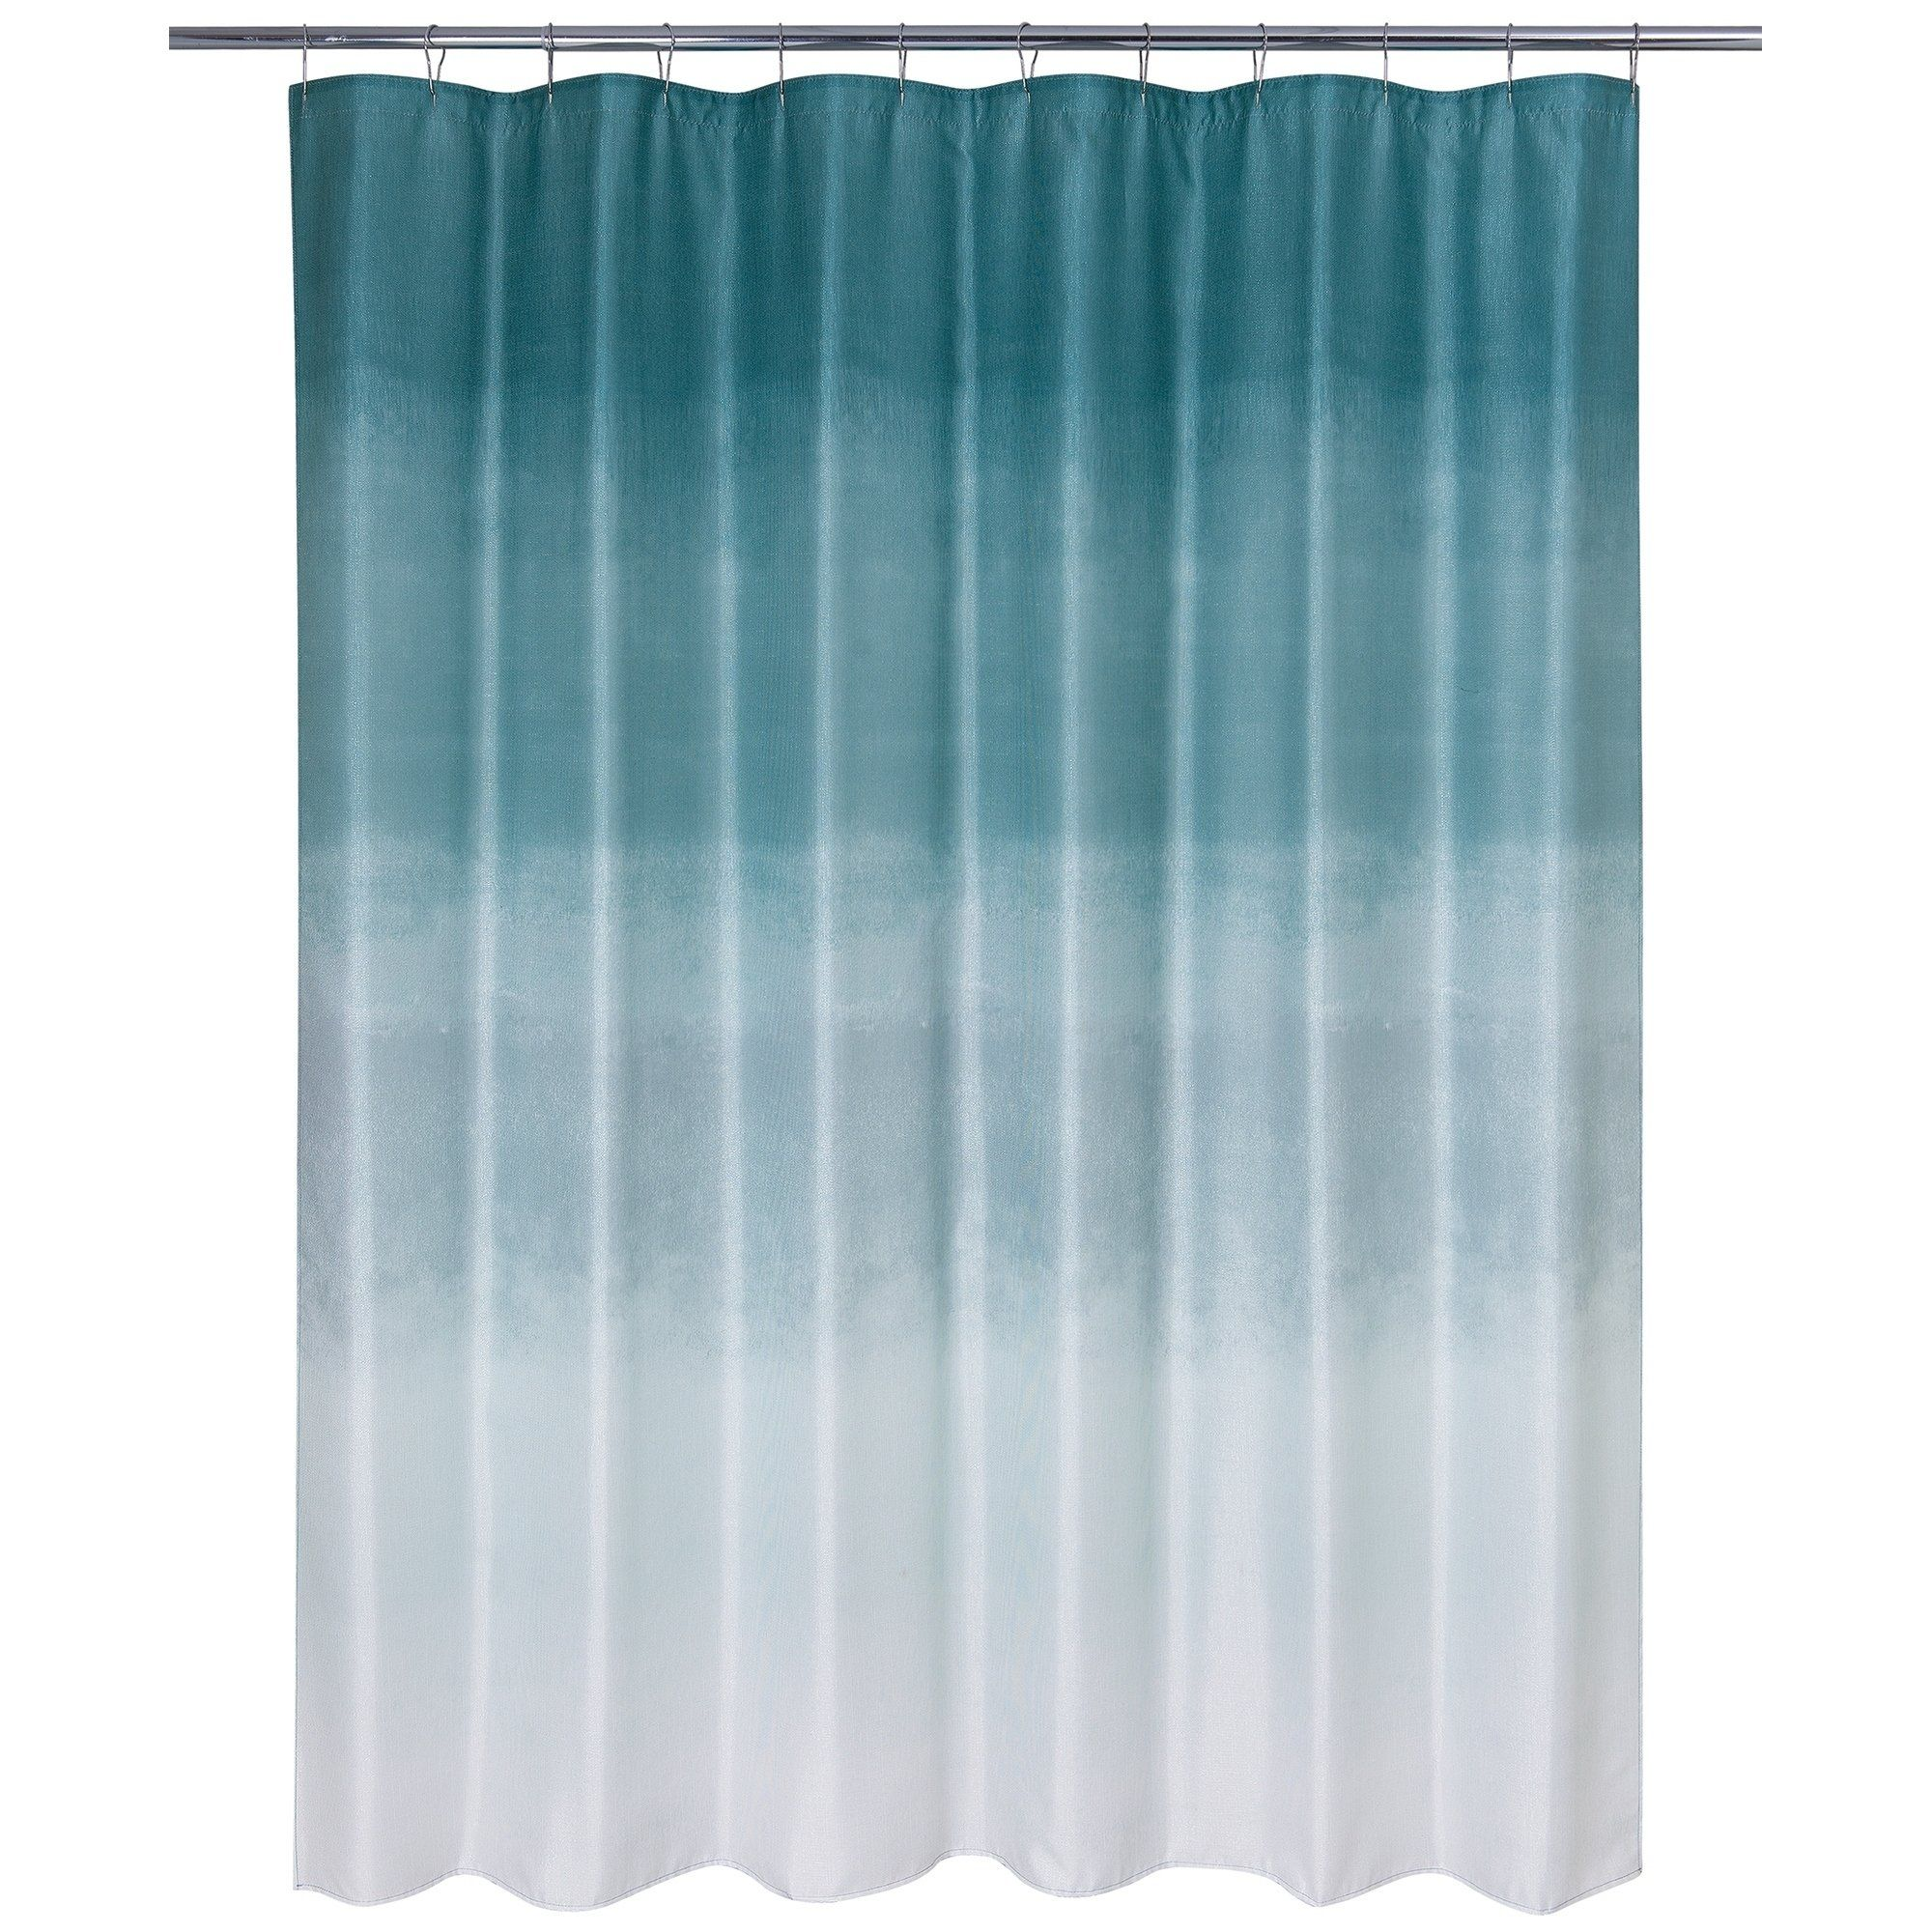 Metallic Ombre Glimmer Shower Curtain Teal Blue Curtains Ombre